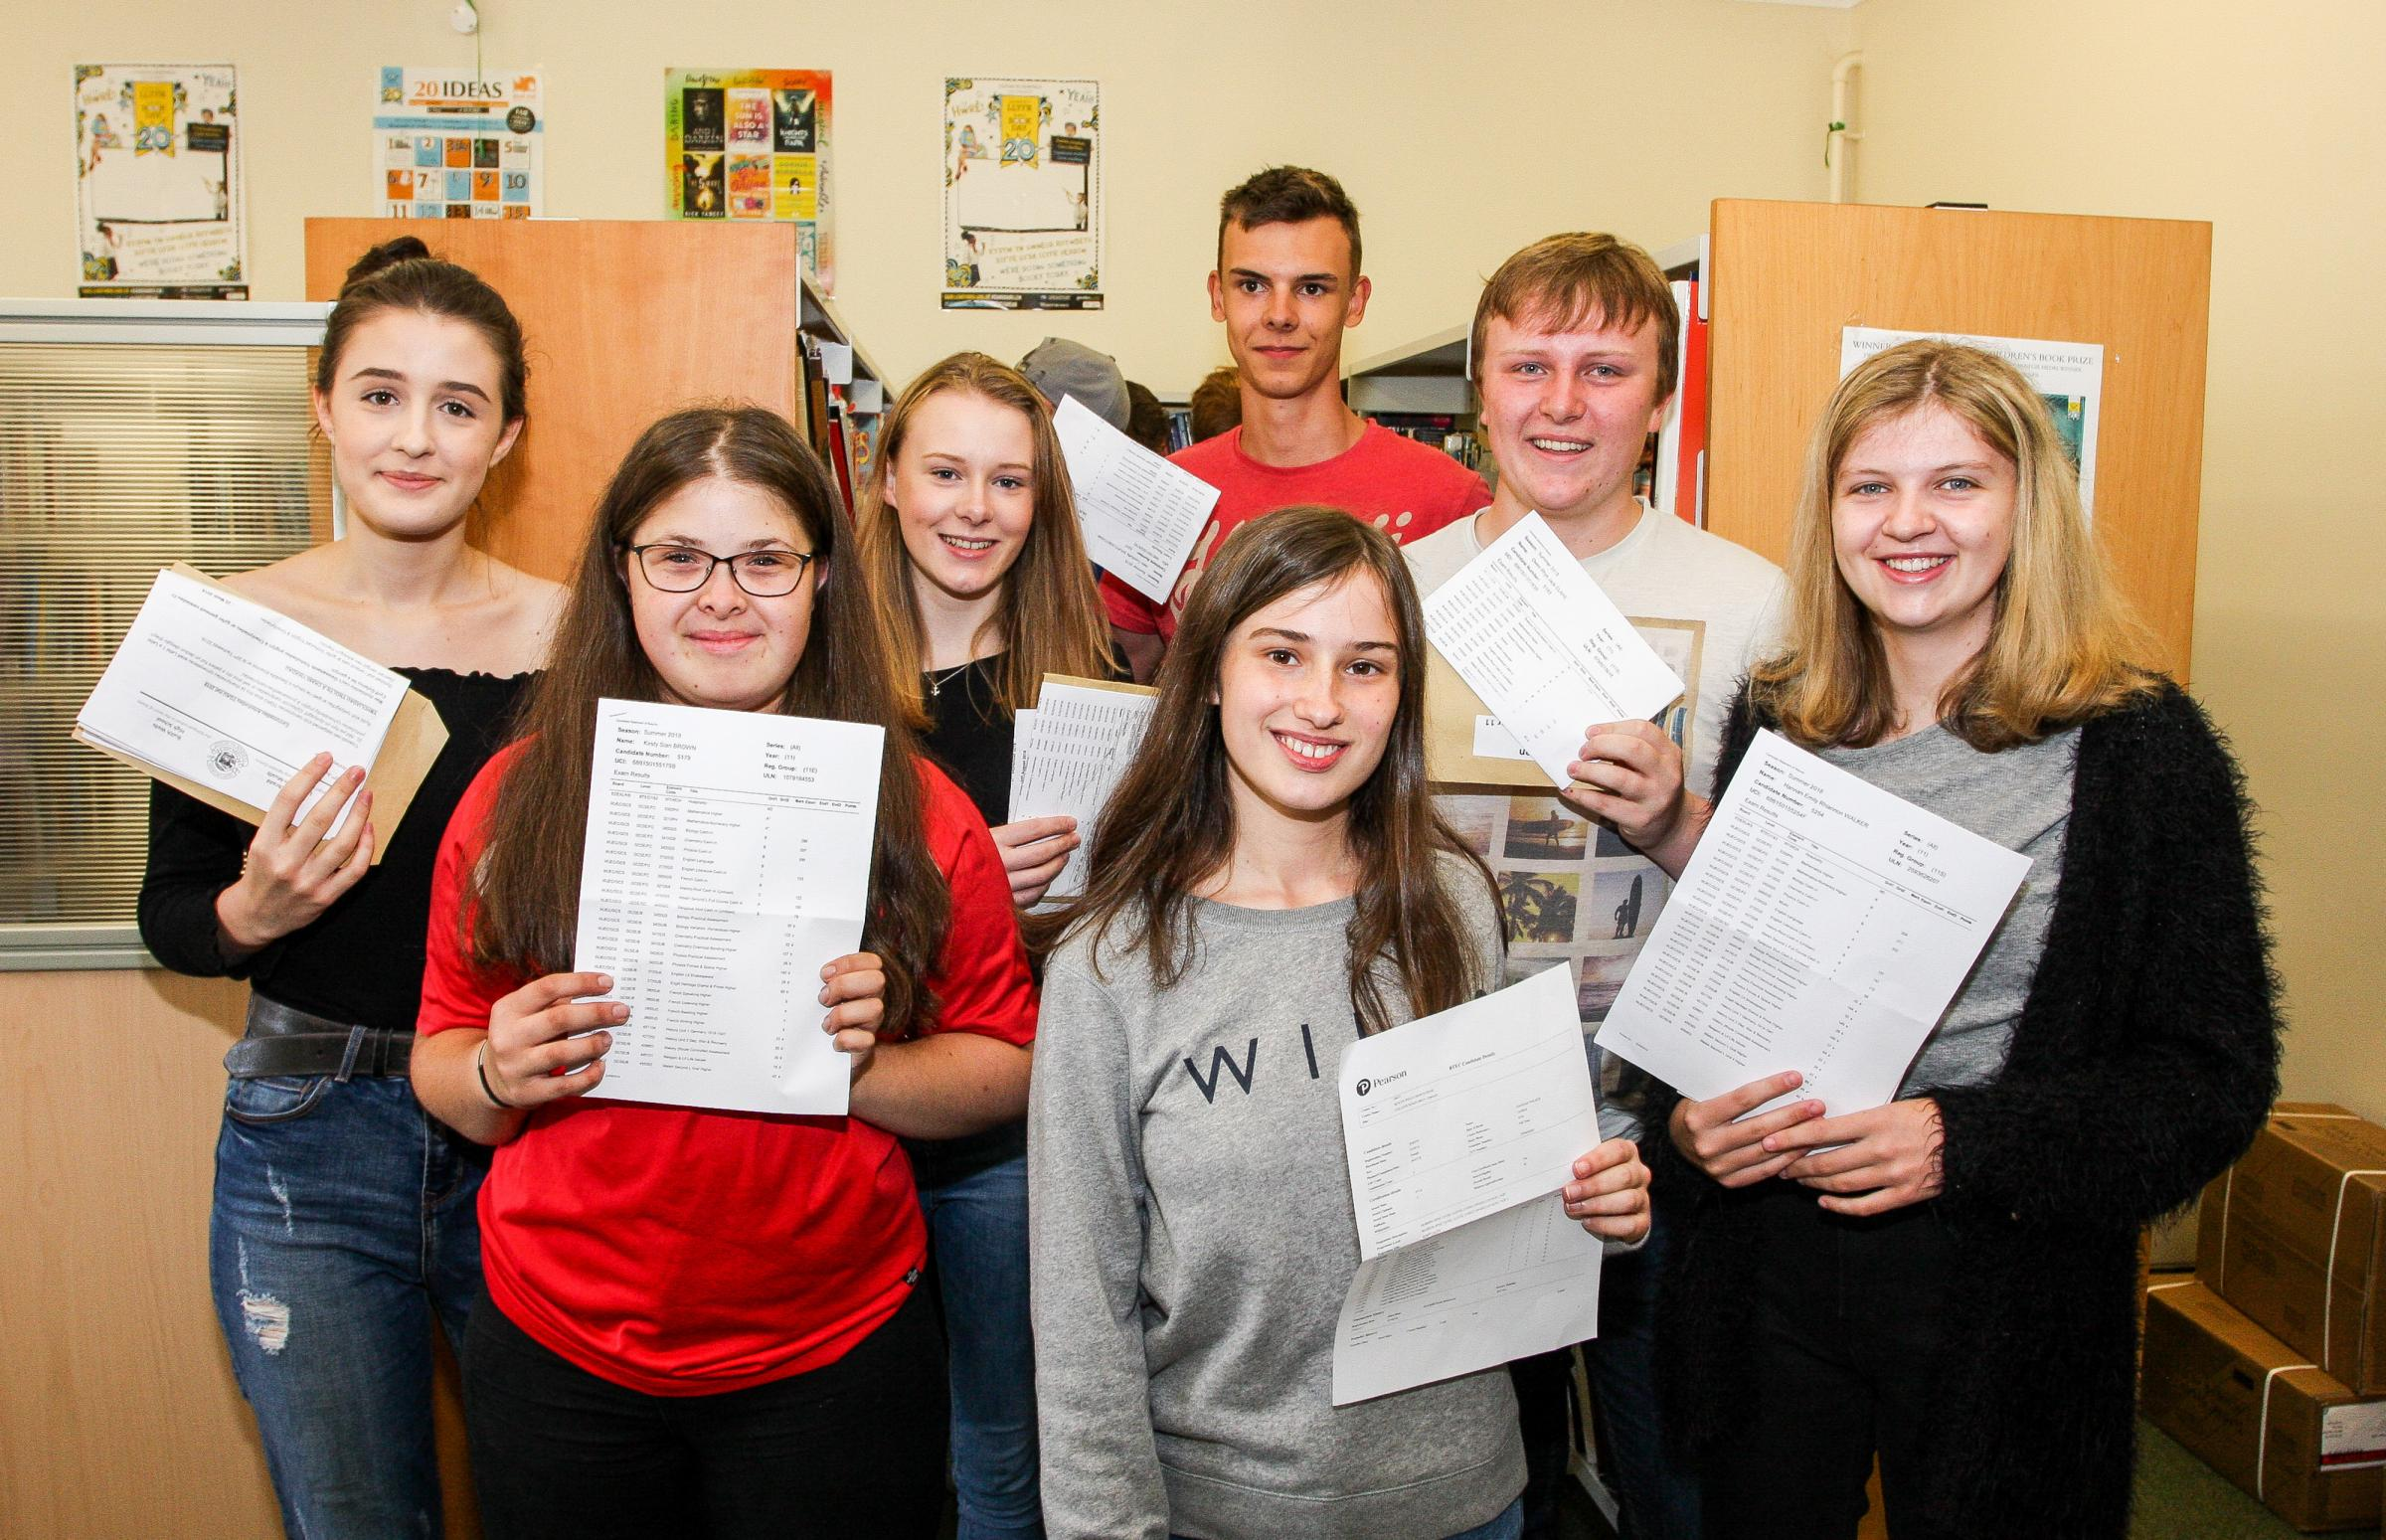 Happy smiles from students of Builth Wells High School after they collected their GCSE Results on Thursday morning. They include Chloe Morris who gained elevan A Stars as her results, Hannah Moscrop -Cross, Cerys Greason-Watker, Jake Shufflebottom, Owen C